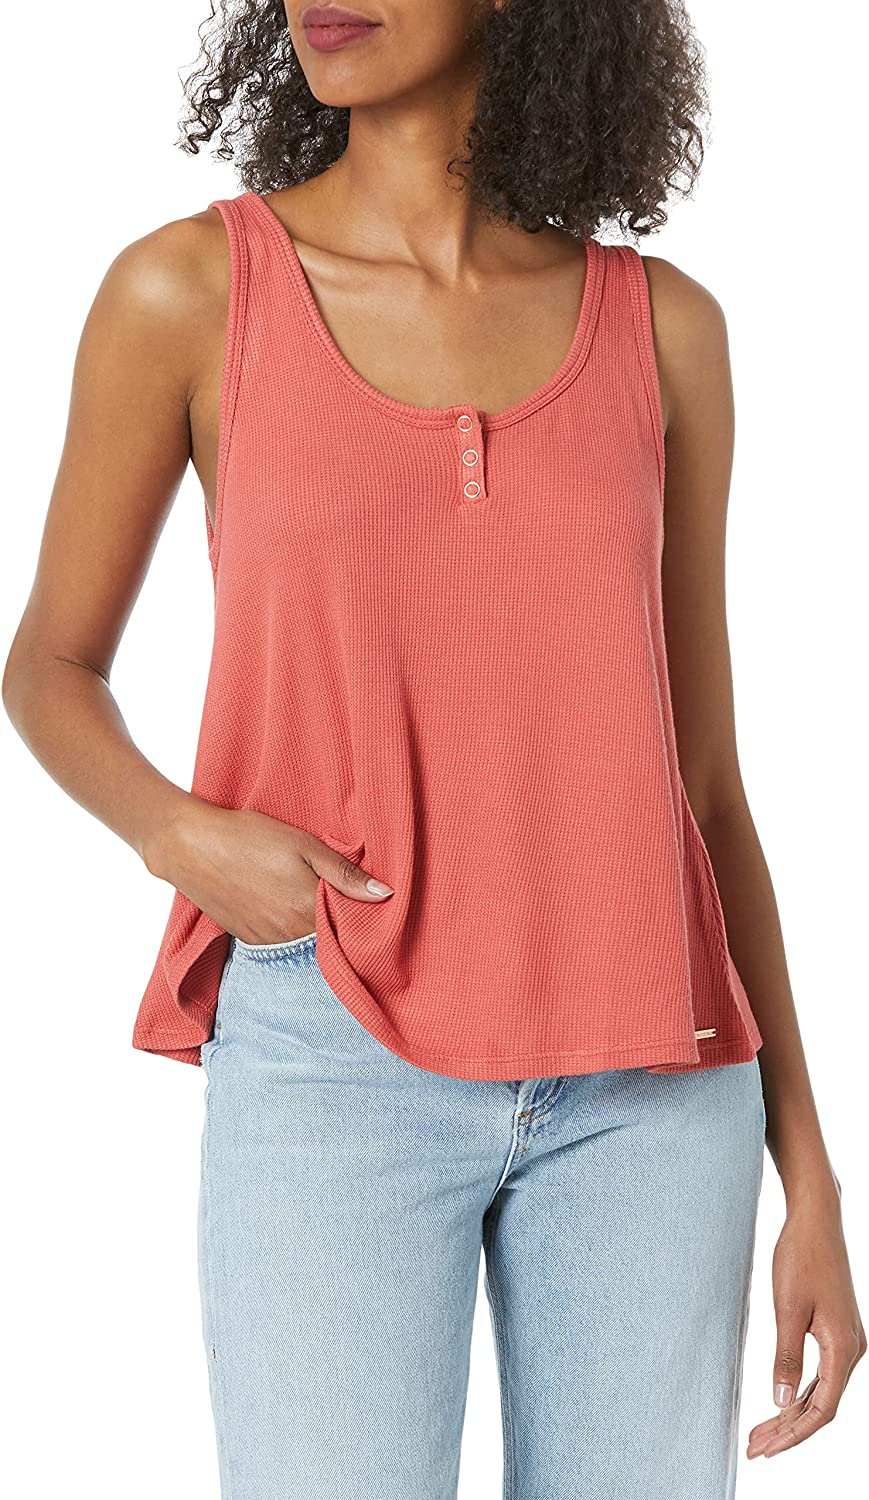 Volcom Women's Lived in Lounge Thermal Tank Top